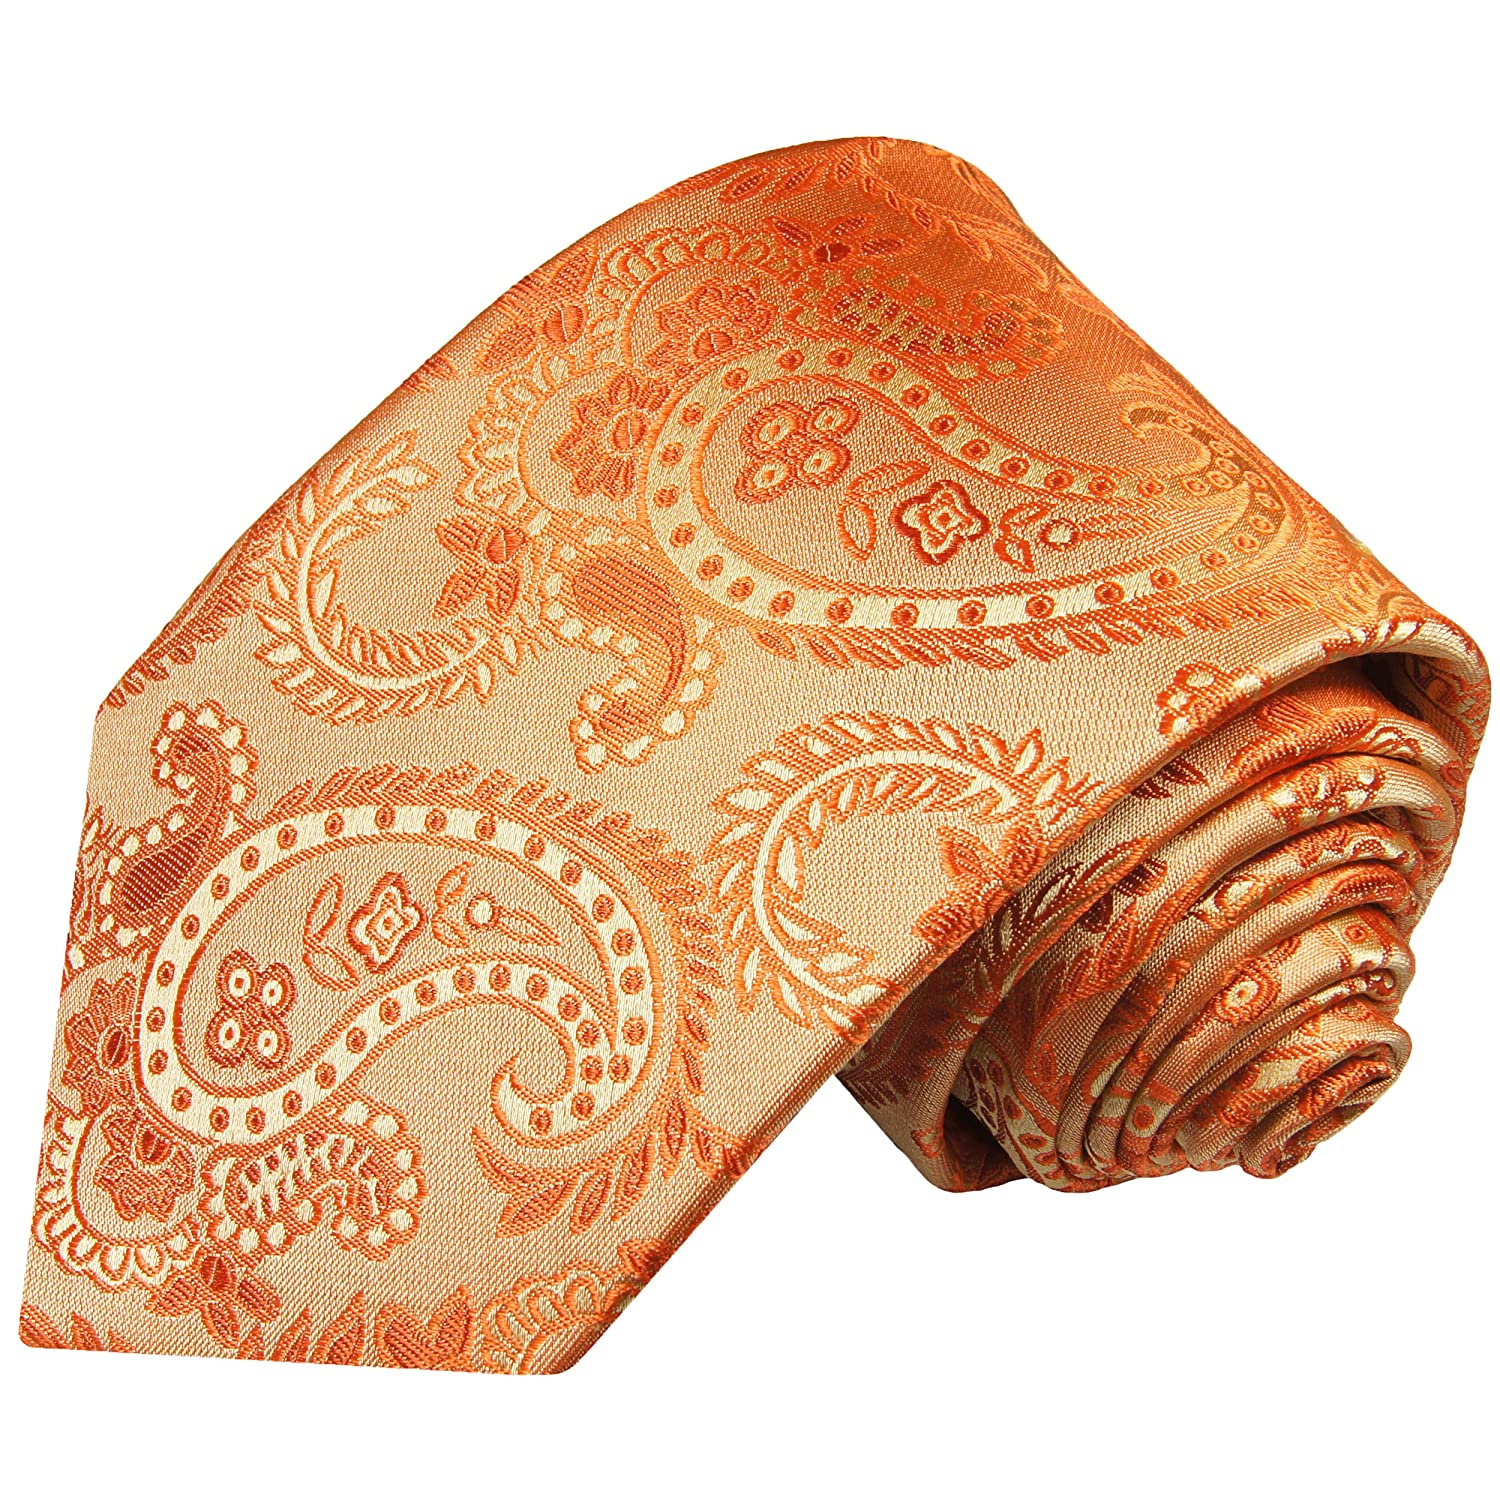 - Paul Malone Paisley Necktie 100% gold orange